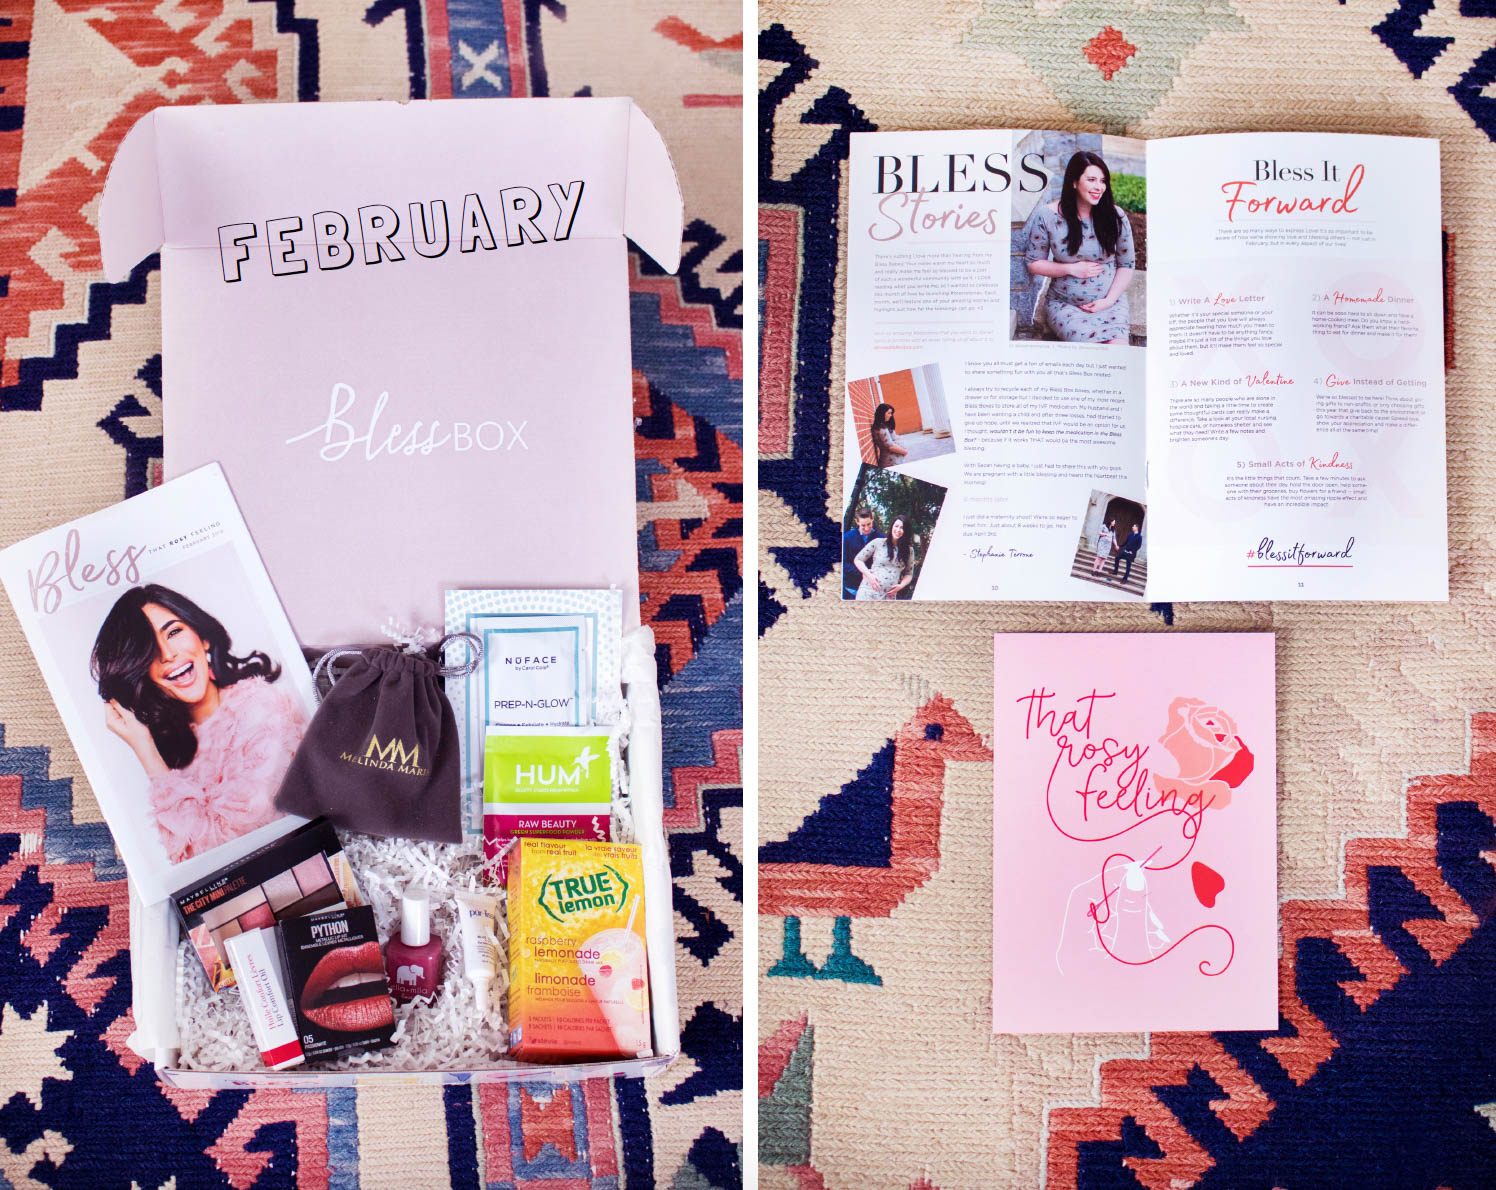 February-Bless-Box-review-Shenska-3